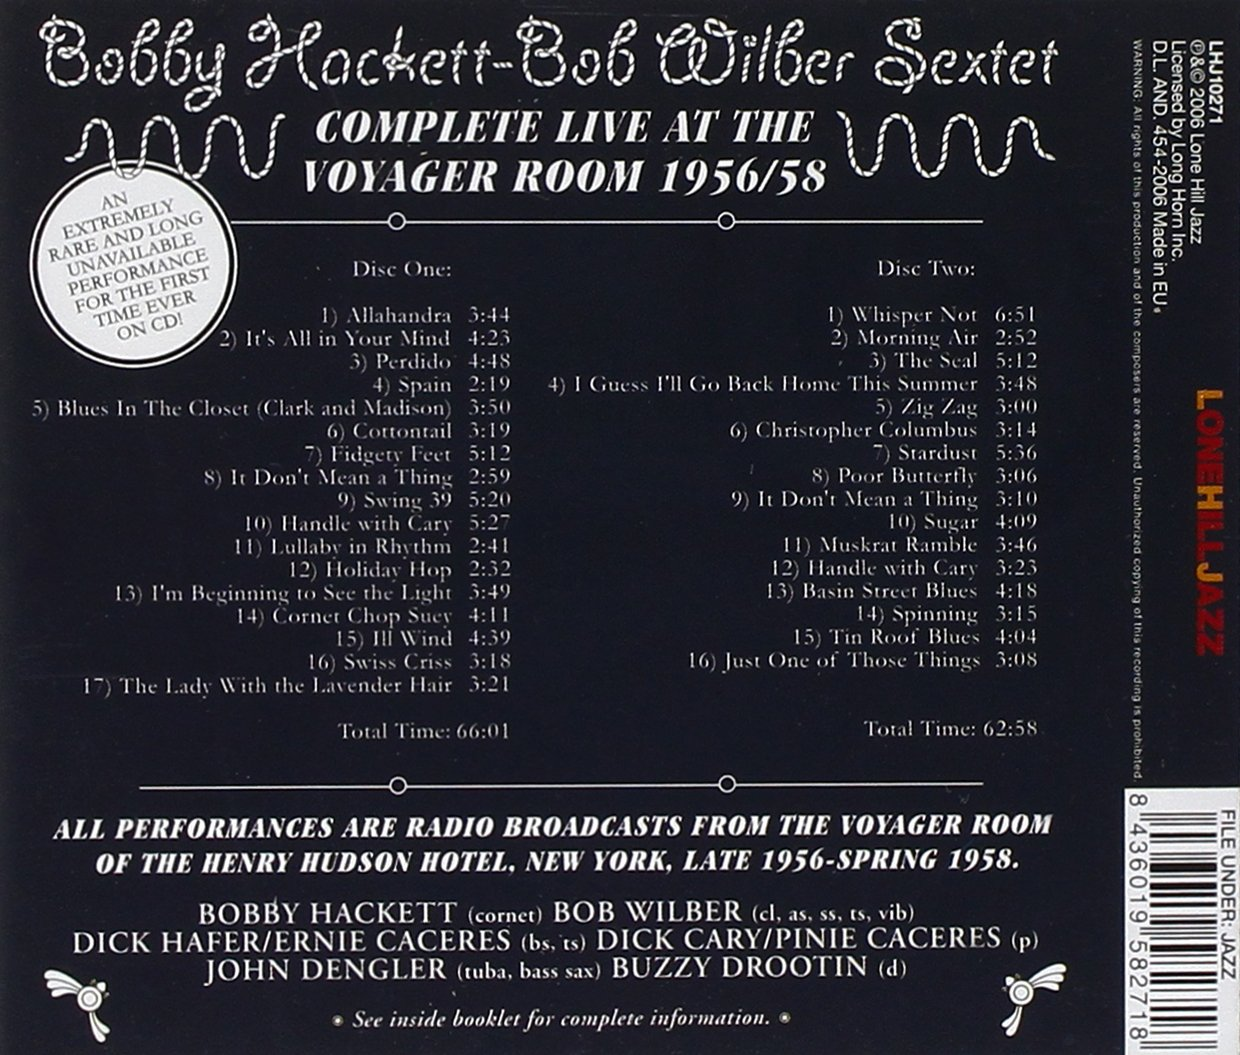 Complete Live at the Voyager Room 1956/58